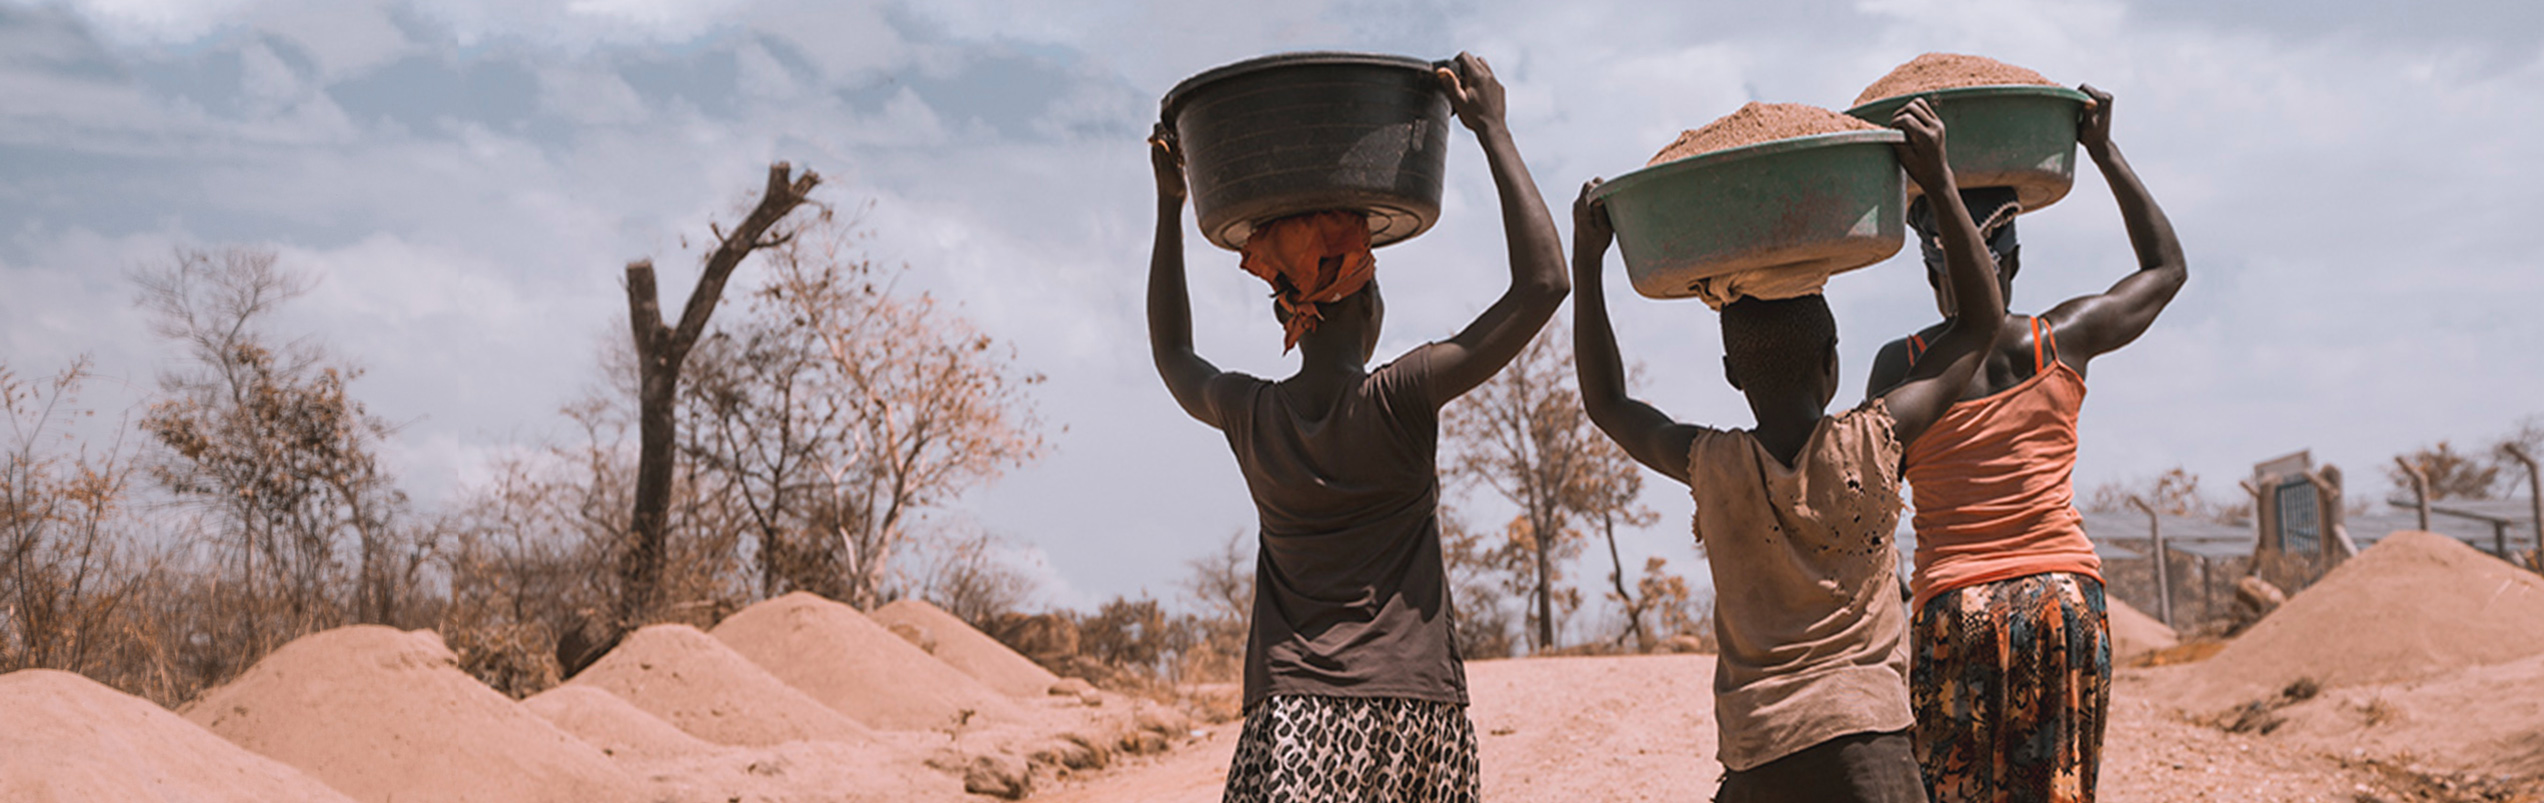 Public sector solutions at AXA Climate to support public institutions worldwide to protect the most vulnerable populations and natural ecosystems against natural disasters and climate risks